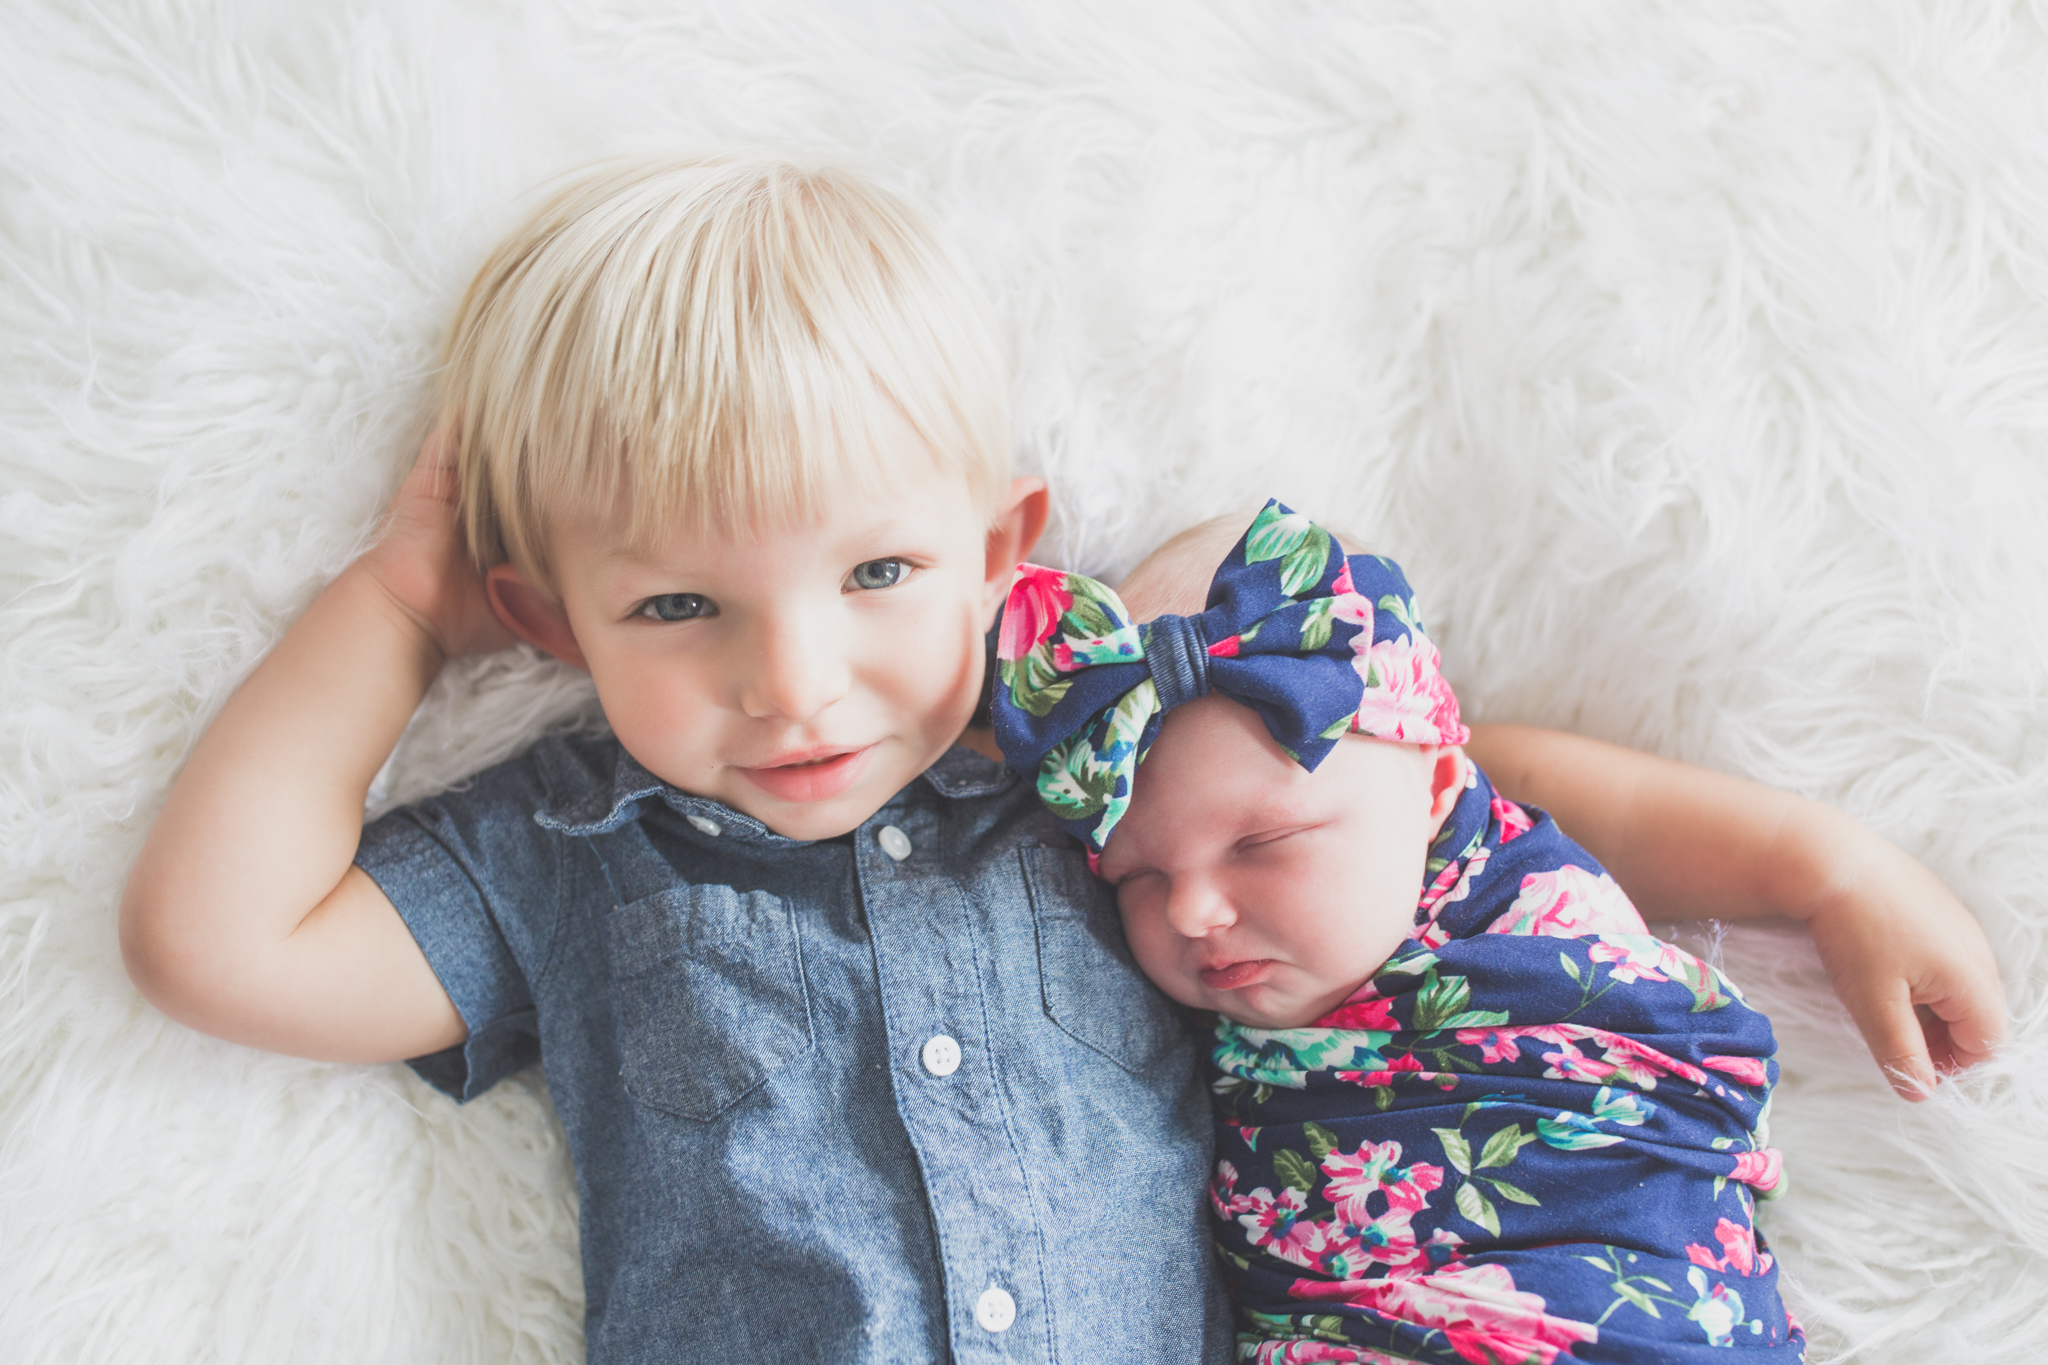 Sibling photos Newborn session photographer lifestyle studio - Cara Peterson Photography Rockford IL-4-3.jpg